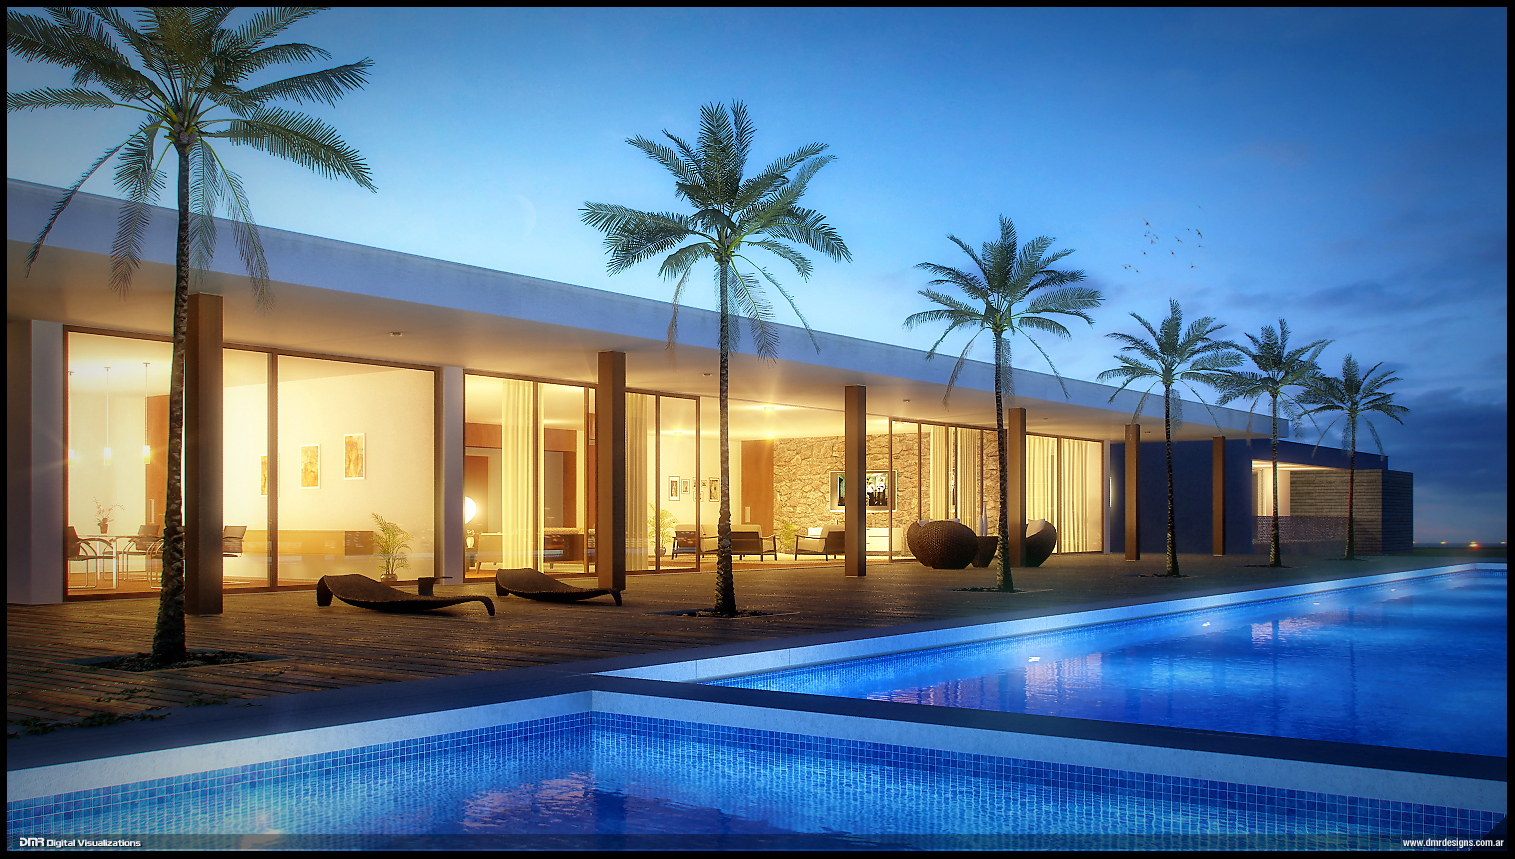 exterior night rendering vray 3ds max. quinta house exterior by diegoreales night rendering vray 3ds  sc 1 st  Yourrights.co Is a Great Content!!! & Exterior Night Rendering Vray 3ds Max. Using Exterior Lighting To ... azcodes.com